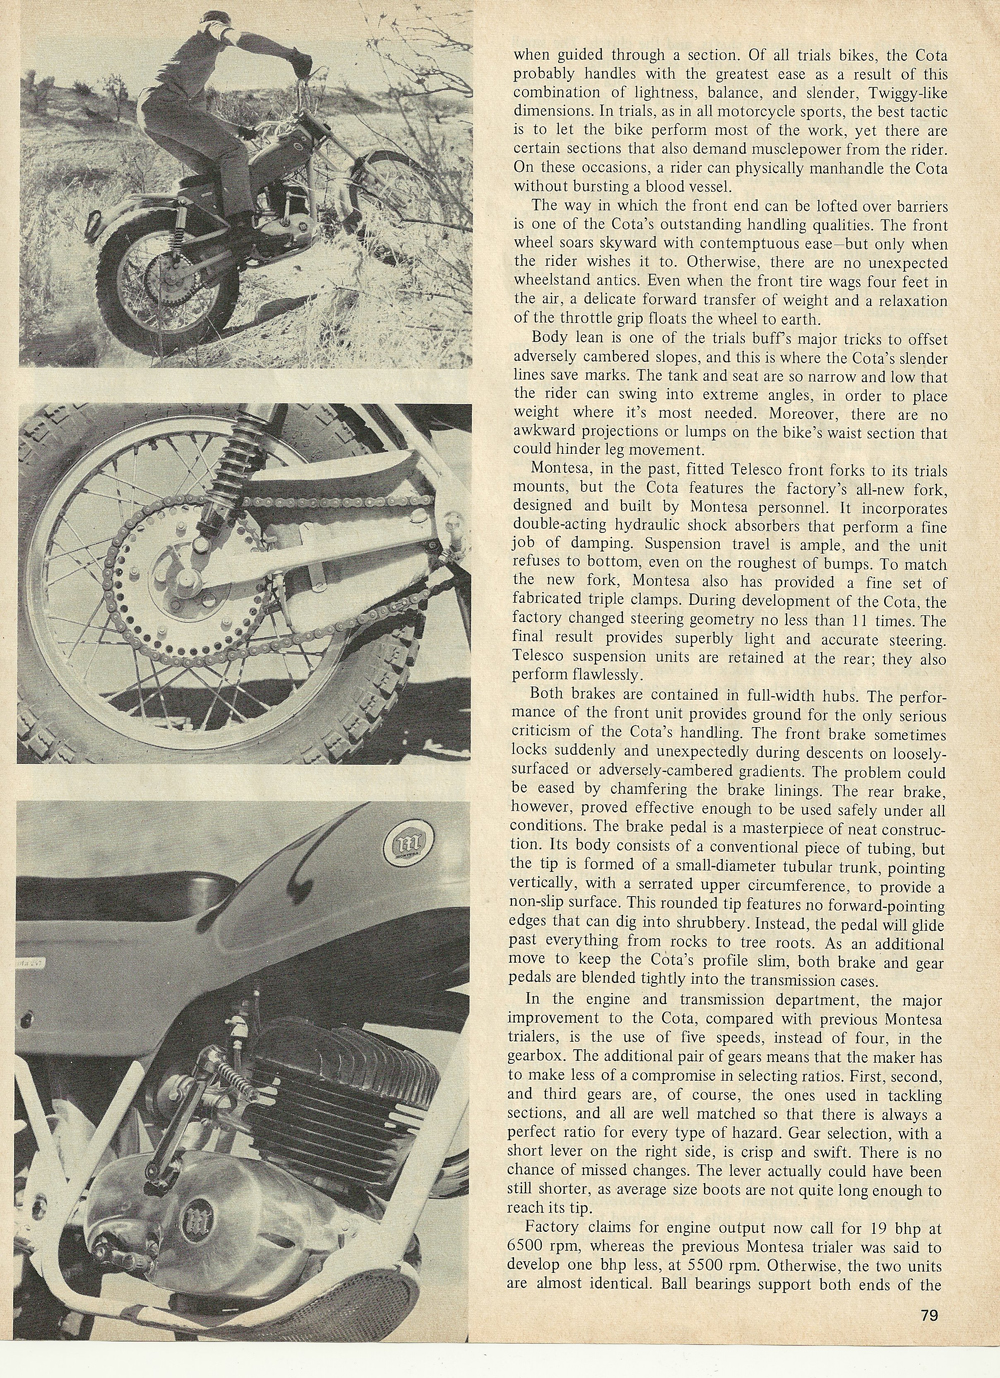 1969 Montesa Cota 247 road test 2.jpg